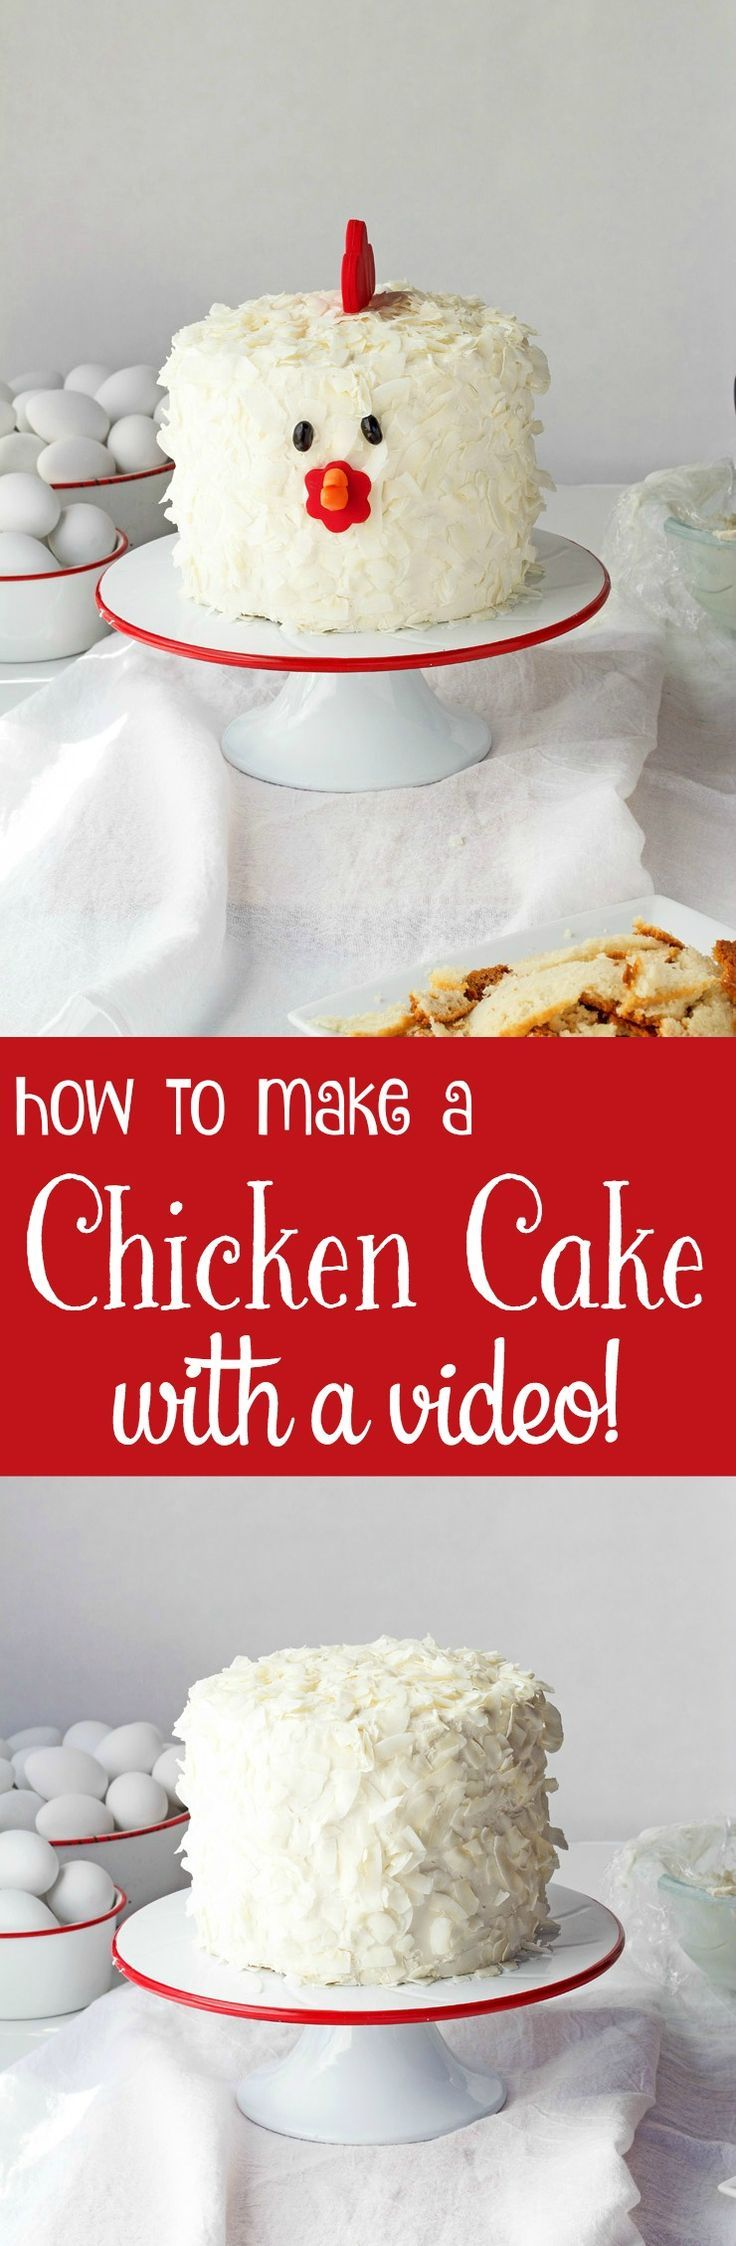 How to Make an Adorable Chicken CakeVideo Chicken cake How to